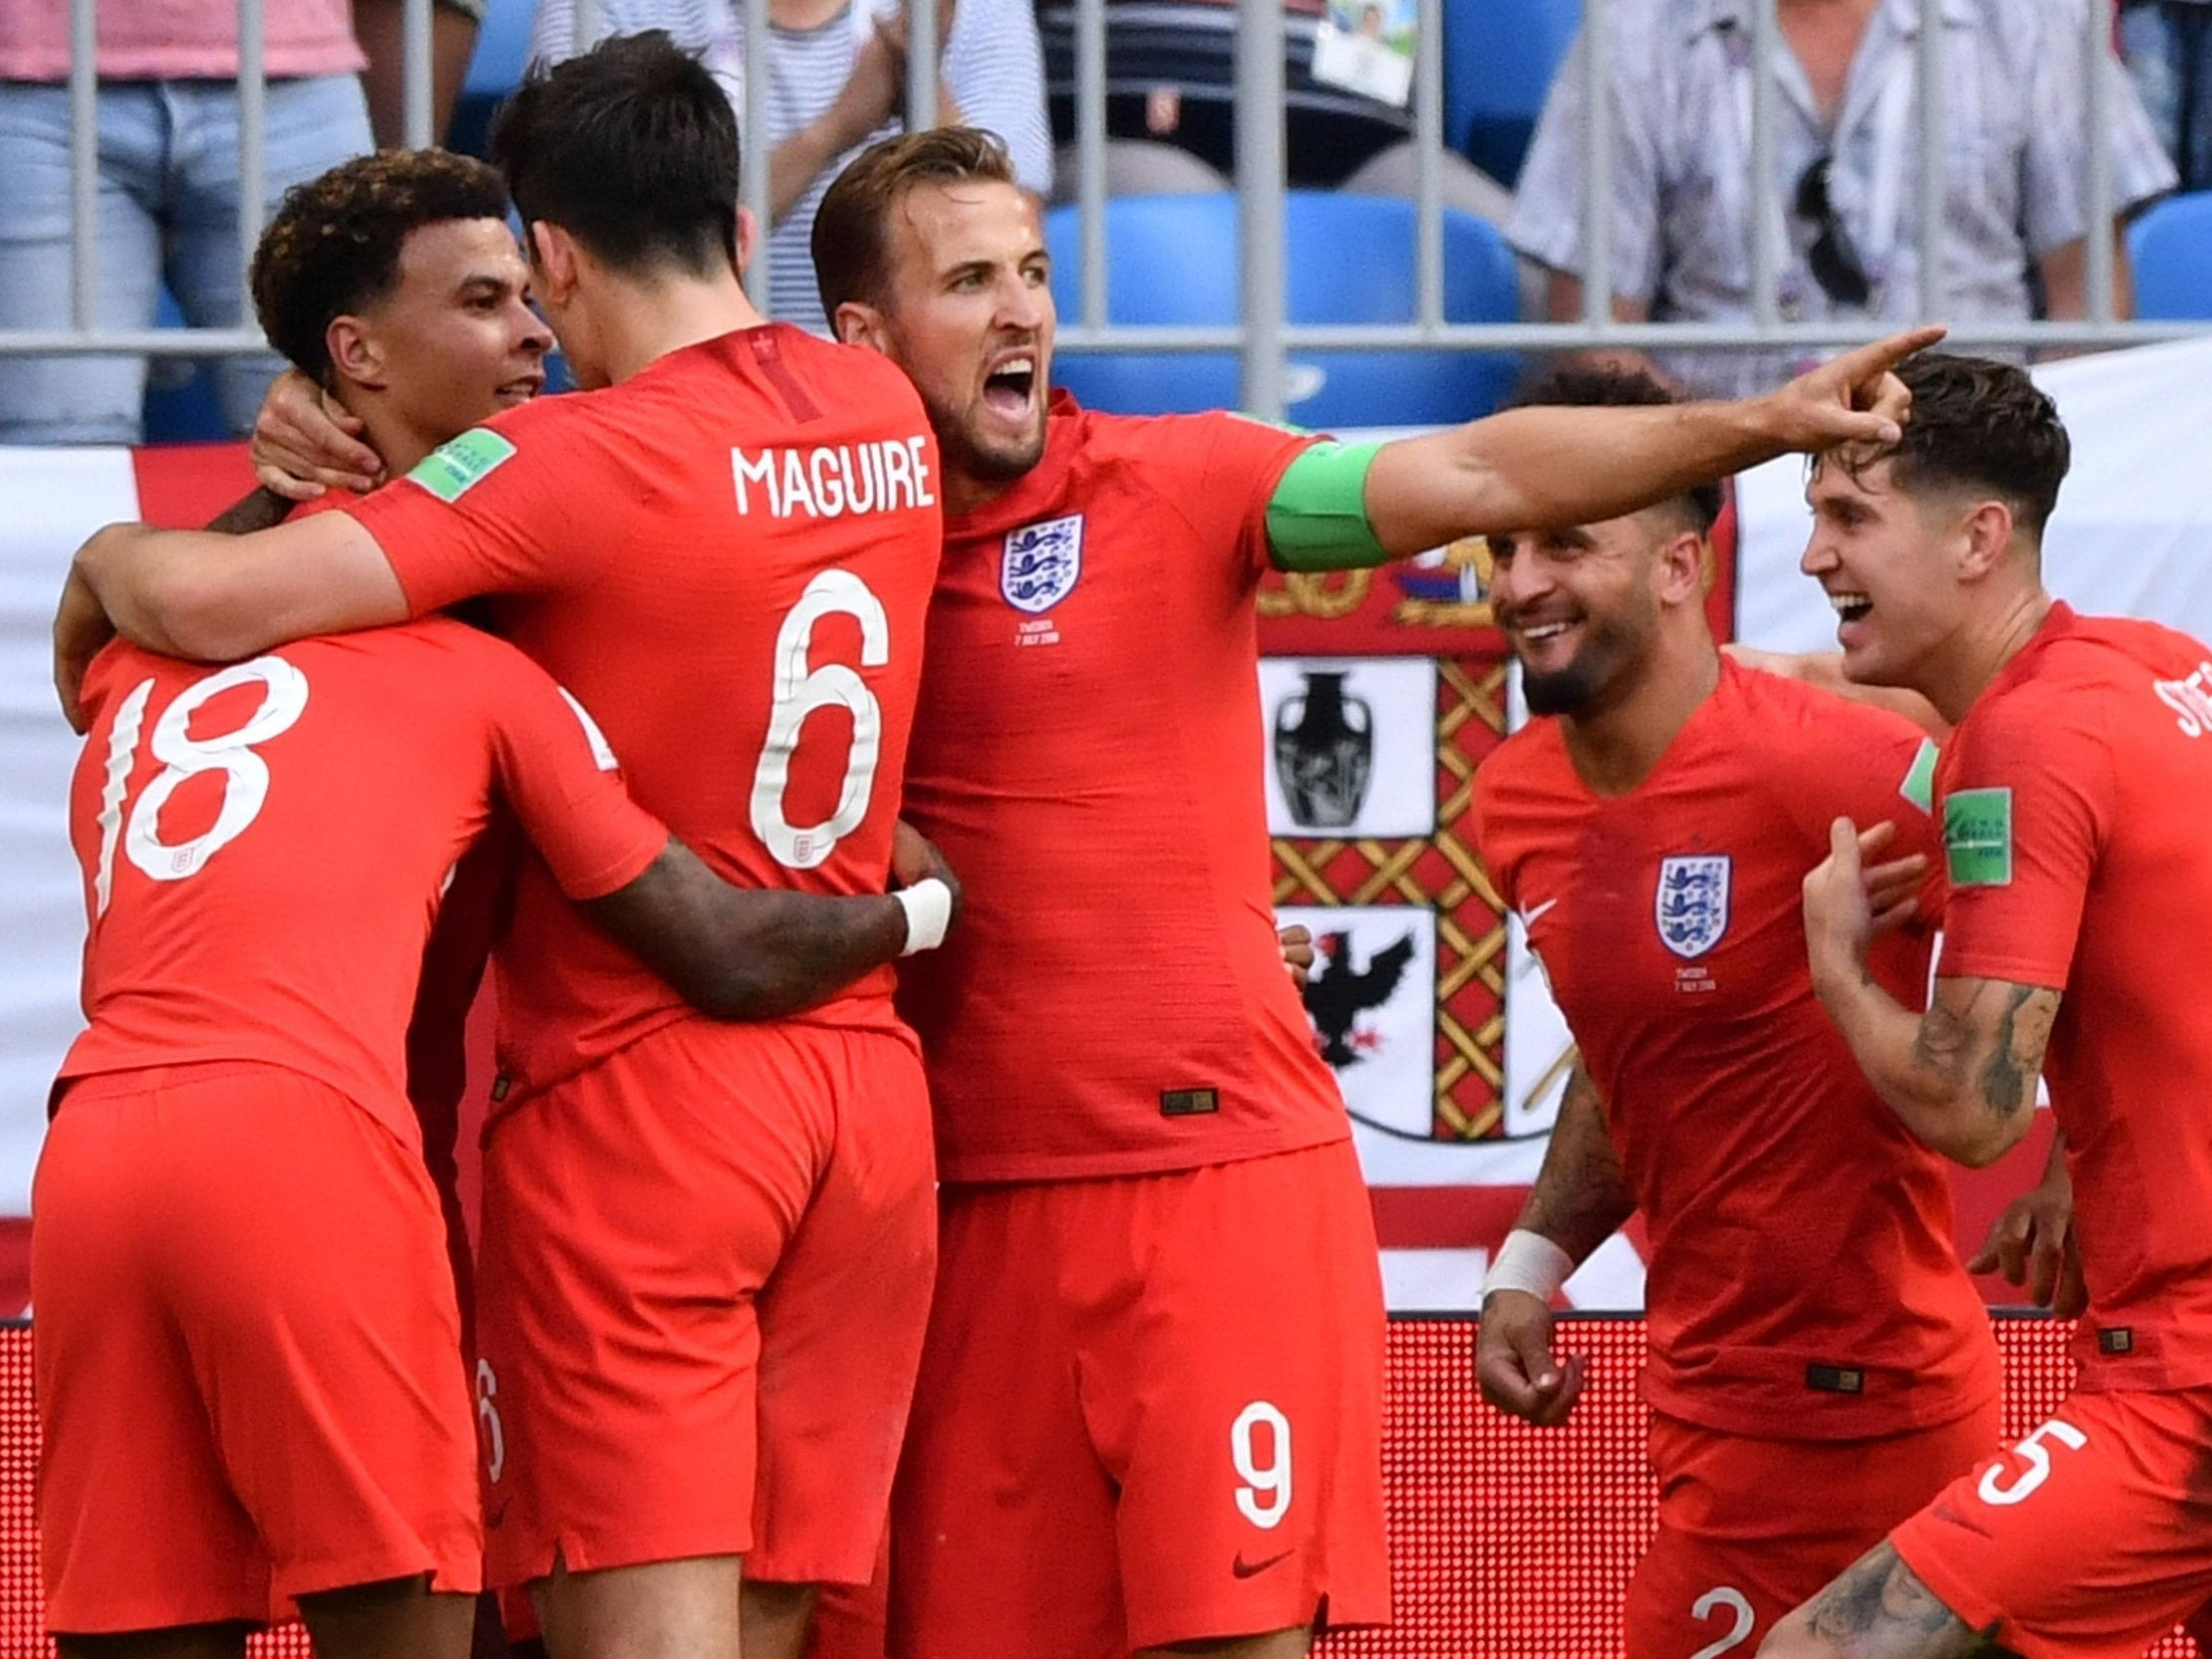 a2460223e9f England vs Sweden LIVE World Cup 2018: England into semi-finals - final  score, latest reaction and highlights | The Independent